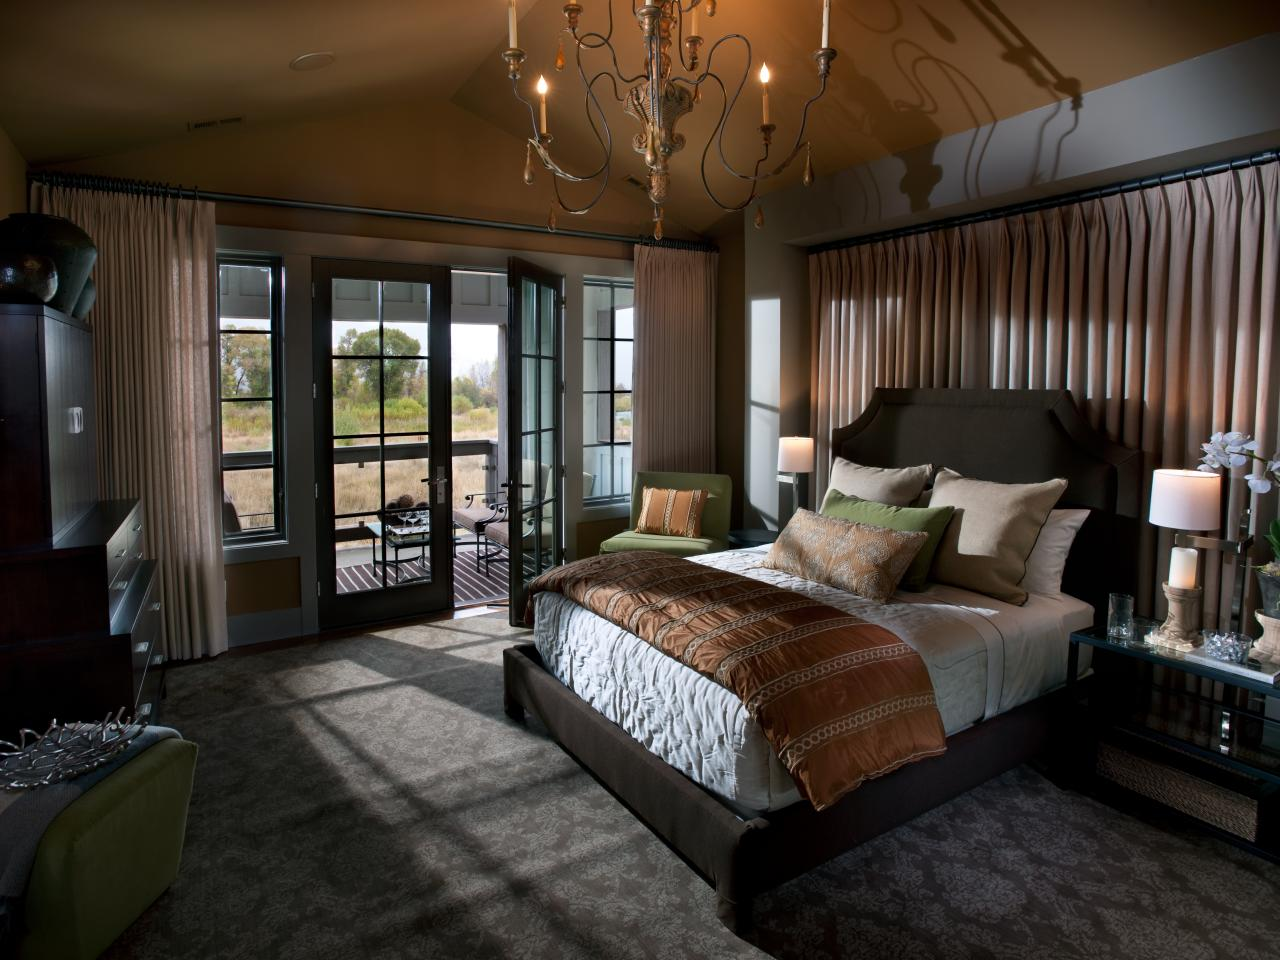 Dream Home 2012 Master Bedroom | Pictures and Video From HGTV Dream